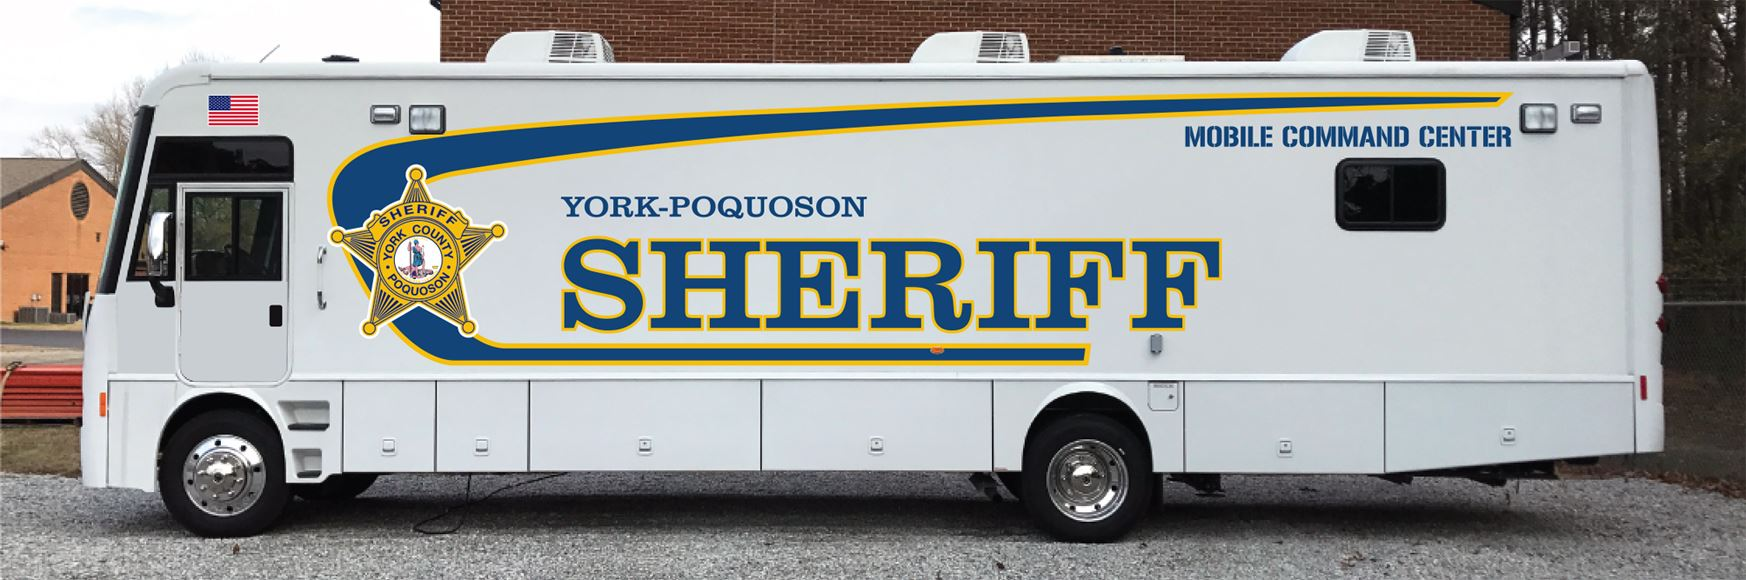 York-Poquoson Sheriff's Office Command Bus